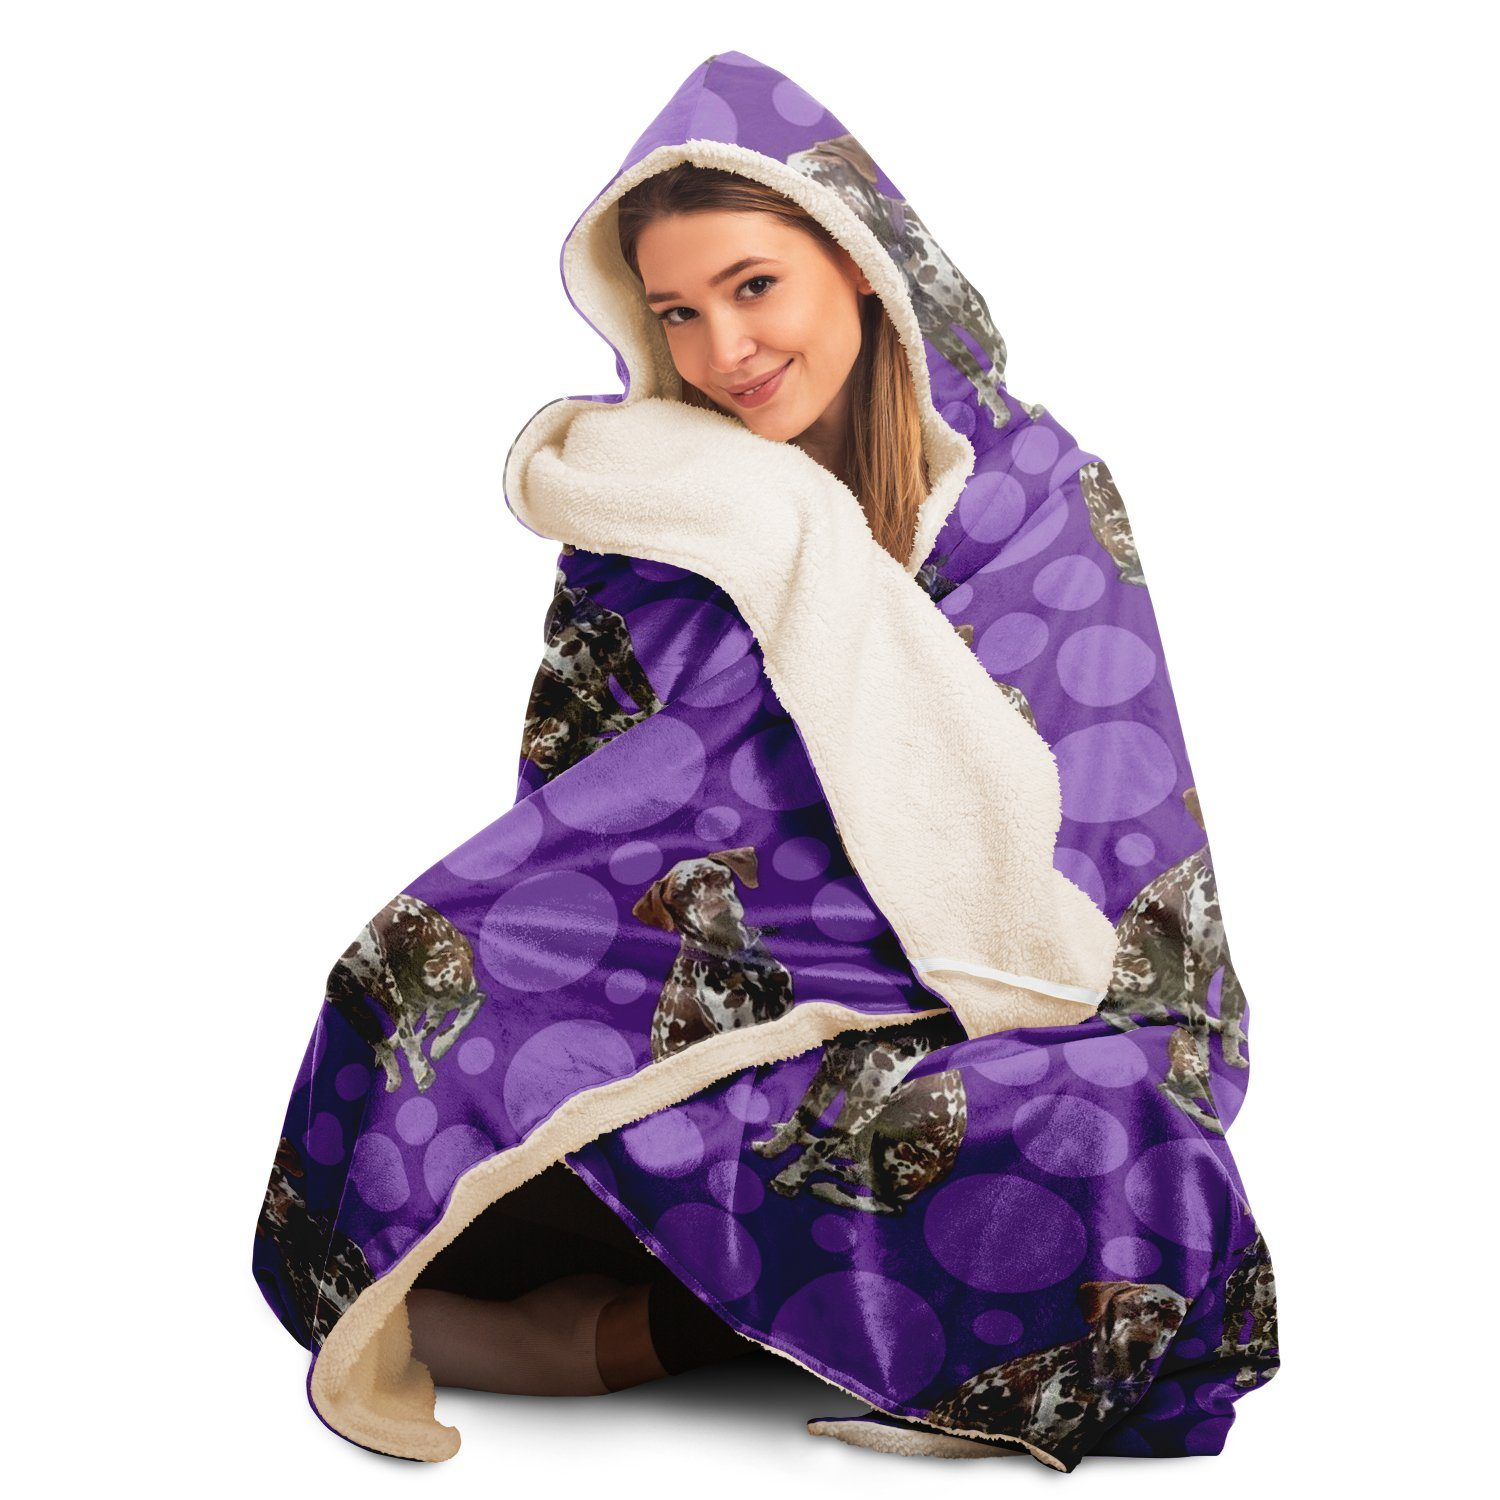 Dalmation - Hooded Blanket - Fair Dinkum Fashion